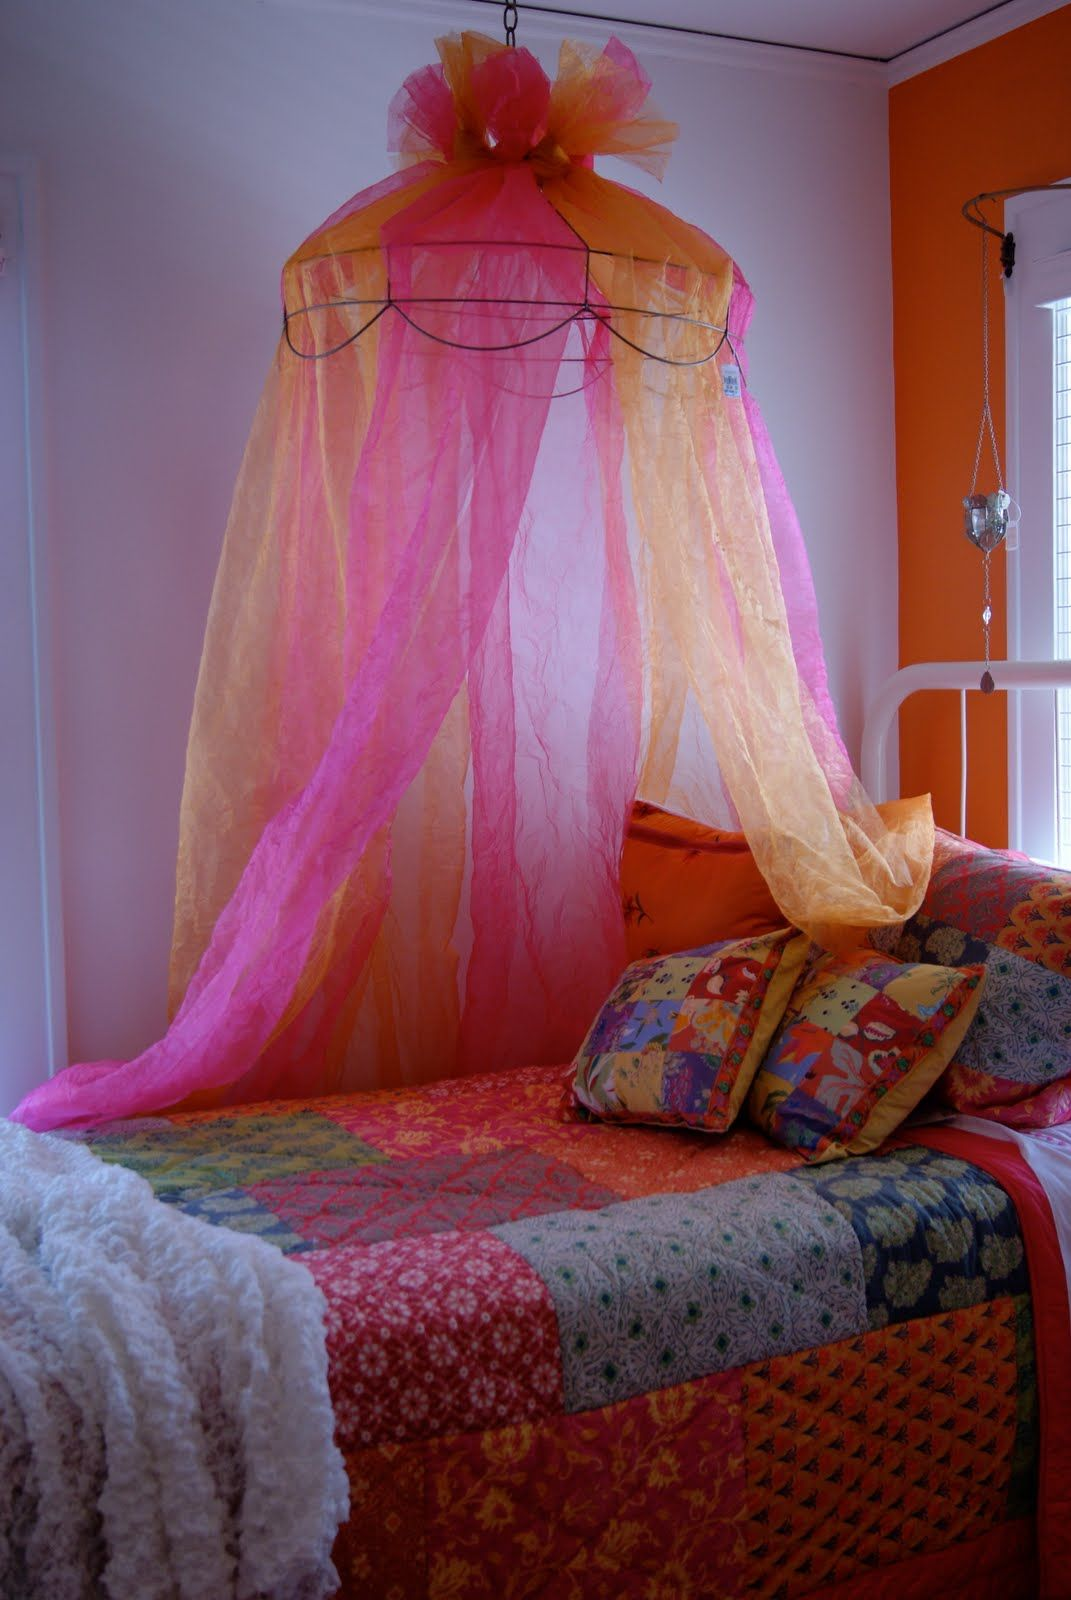 How to make a bed canopy for girls - Lampshade Carcass Turned Into Bed Canopy